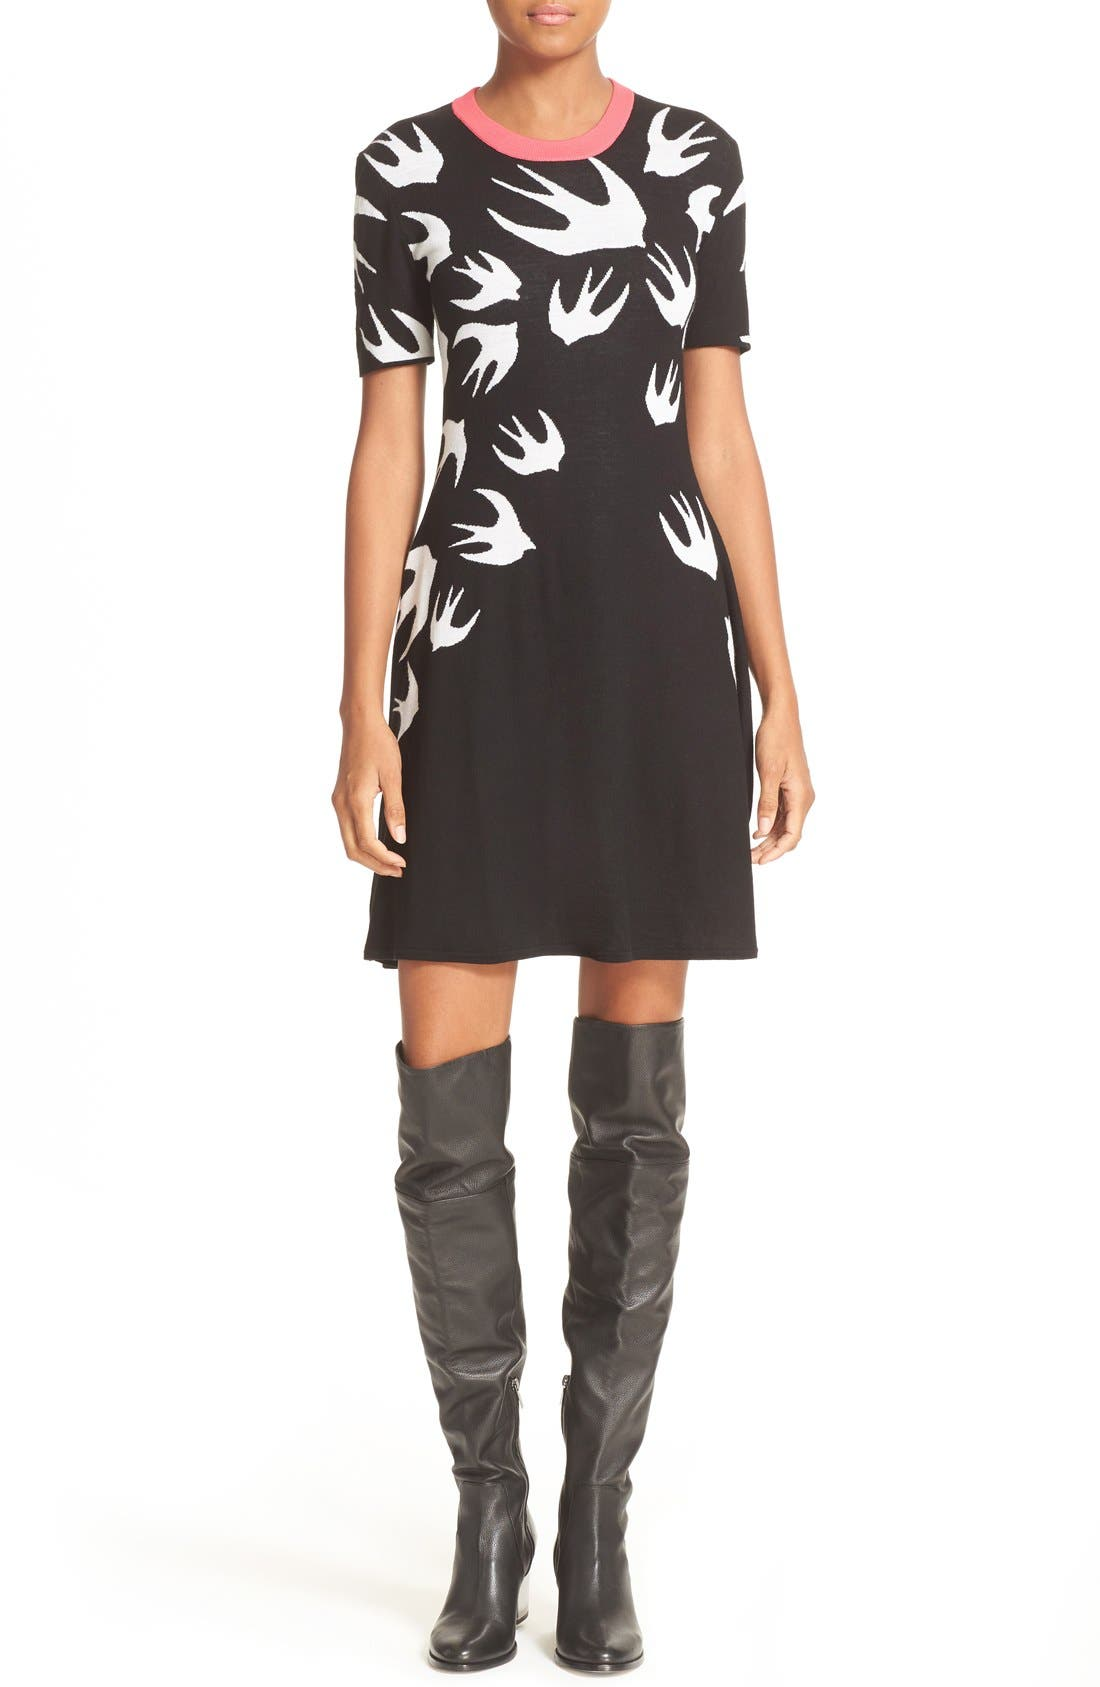 McQ Alexander McQueen Swallow Jacquard Skater Dress